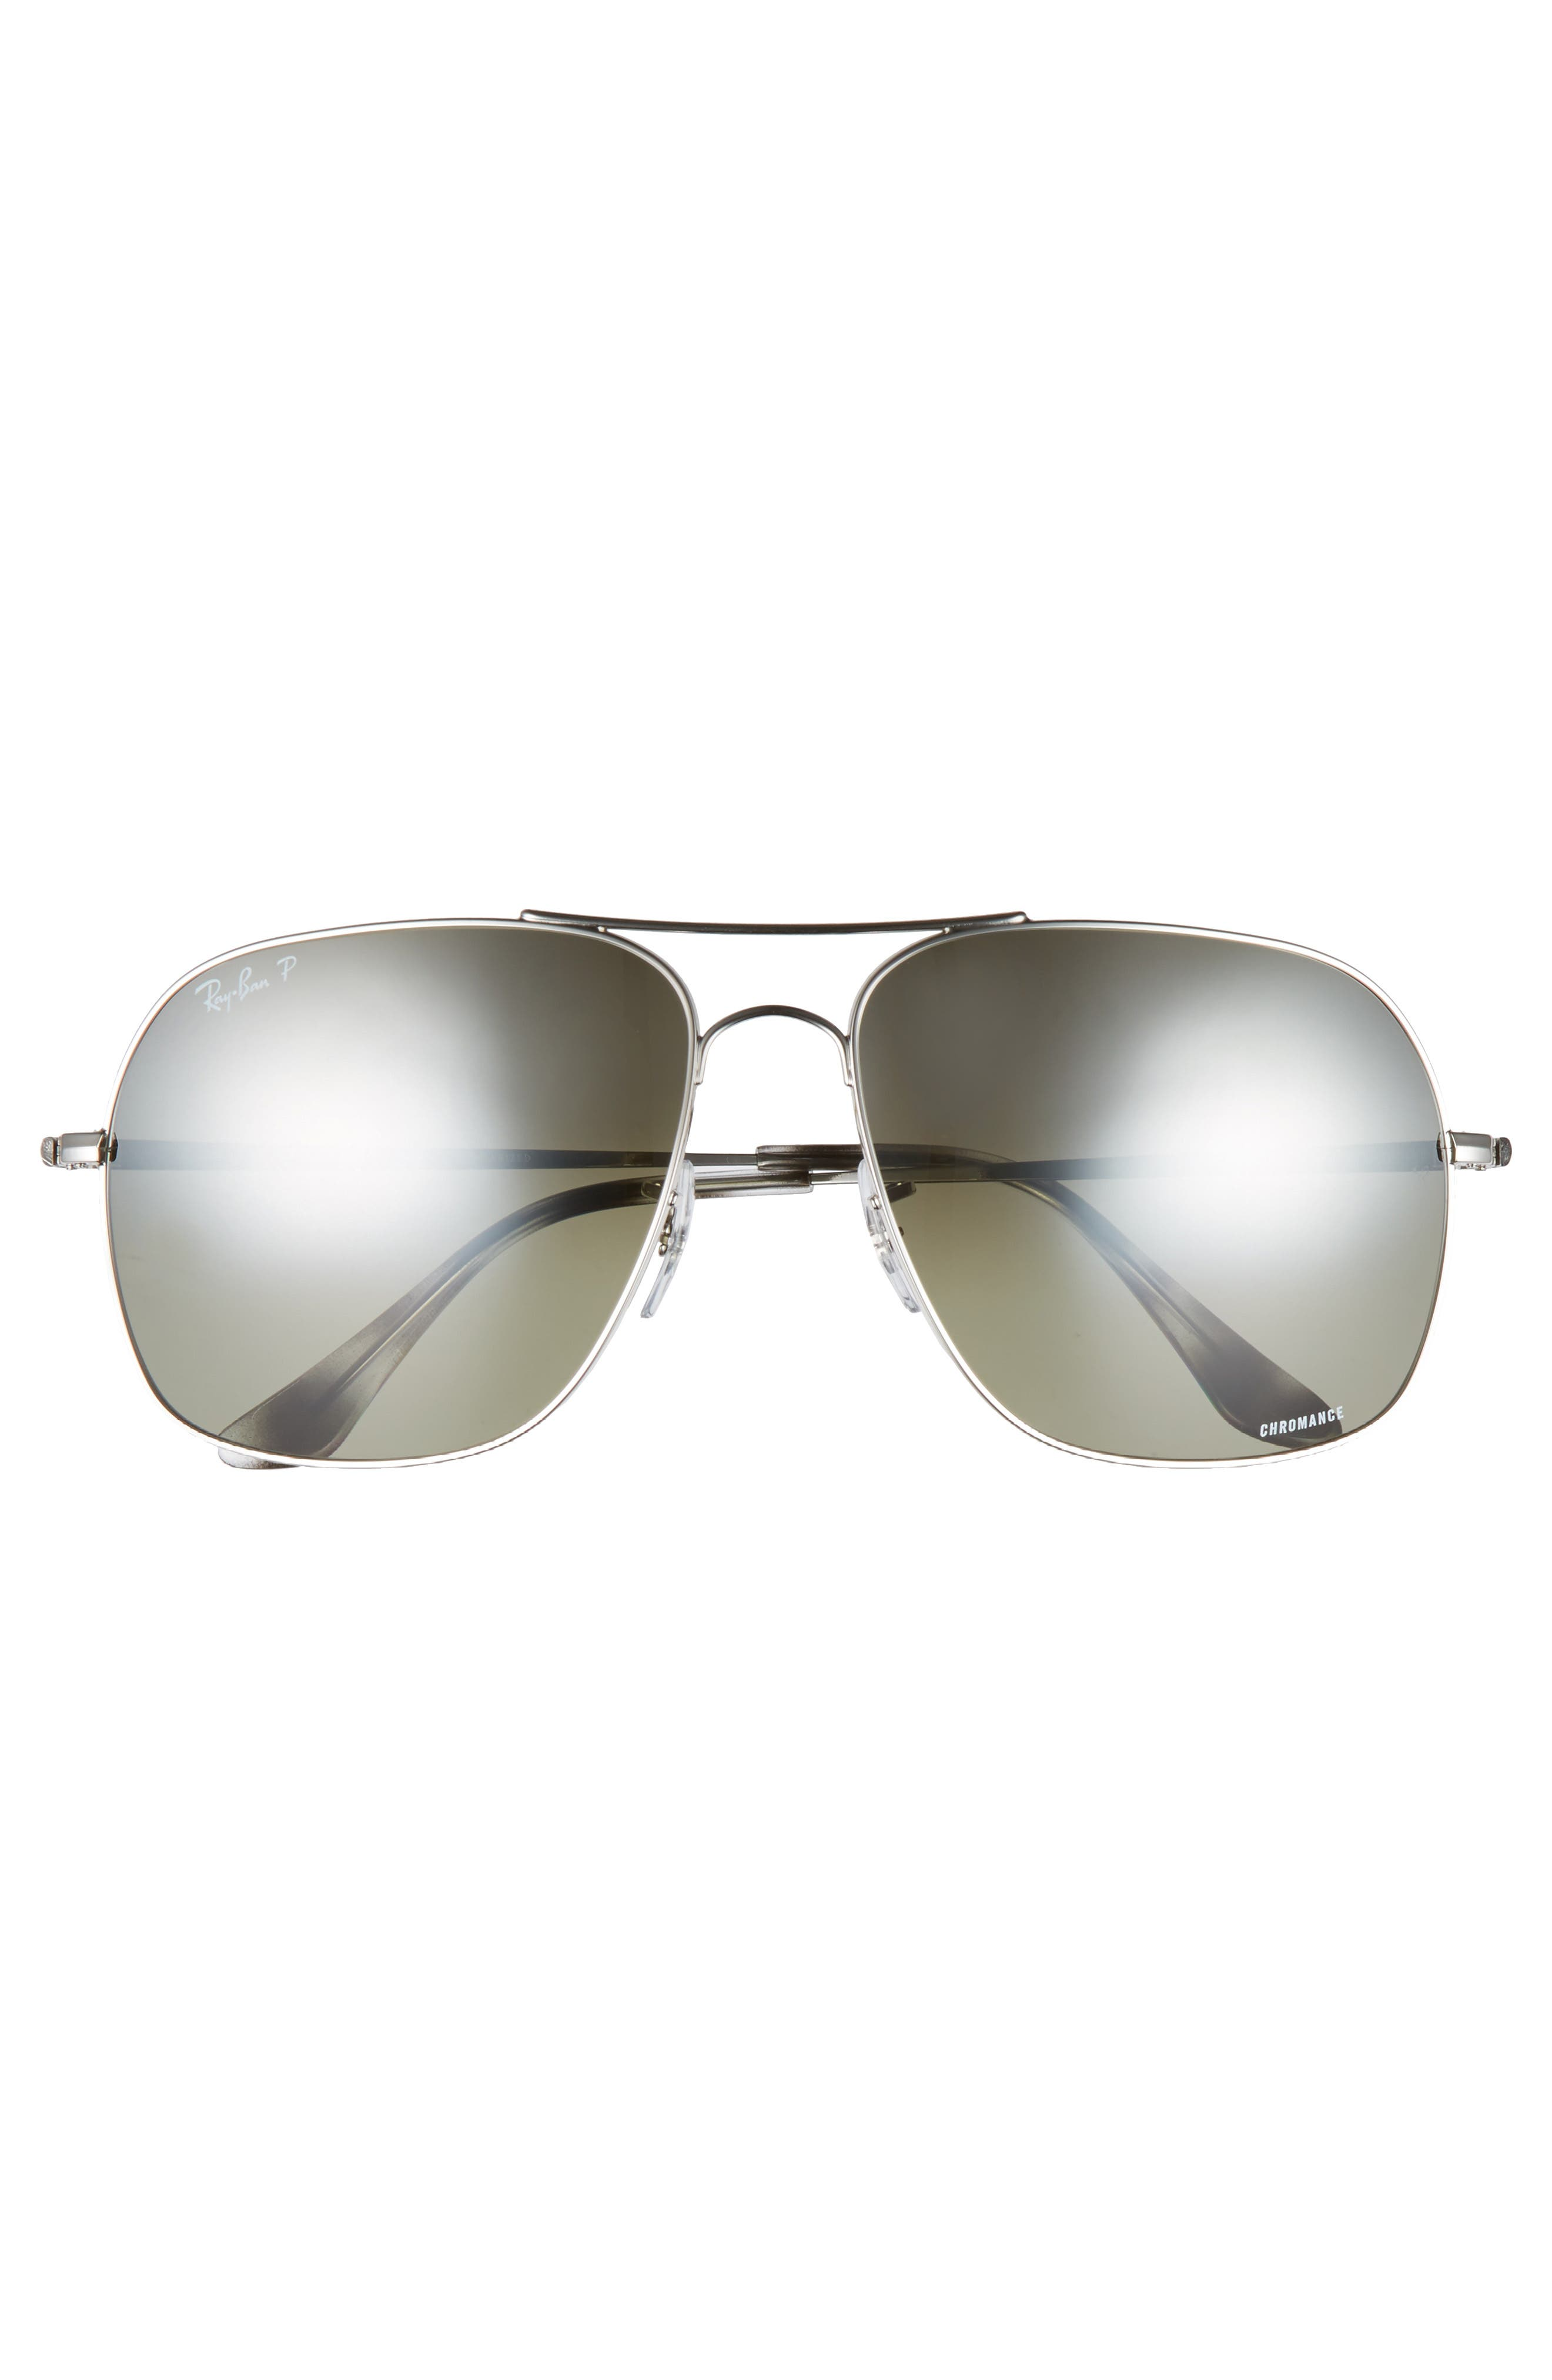 61mm Mirrored Lens Polarized Aviator Sunglasses,                             Alternate thumbnail 3, color,                             Silver